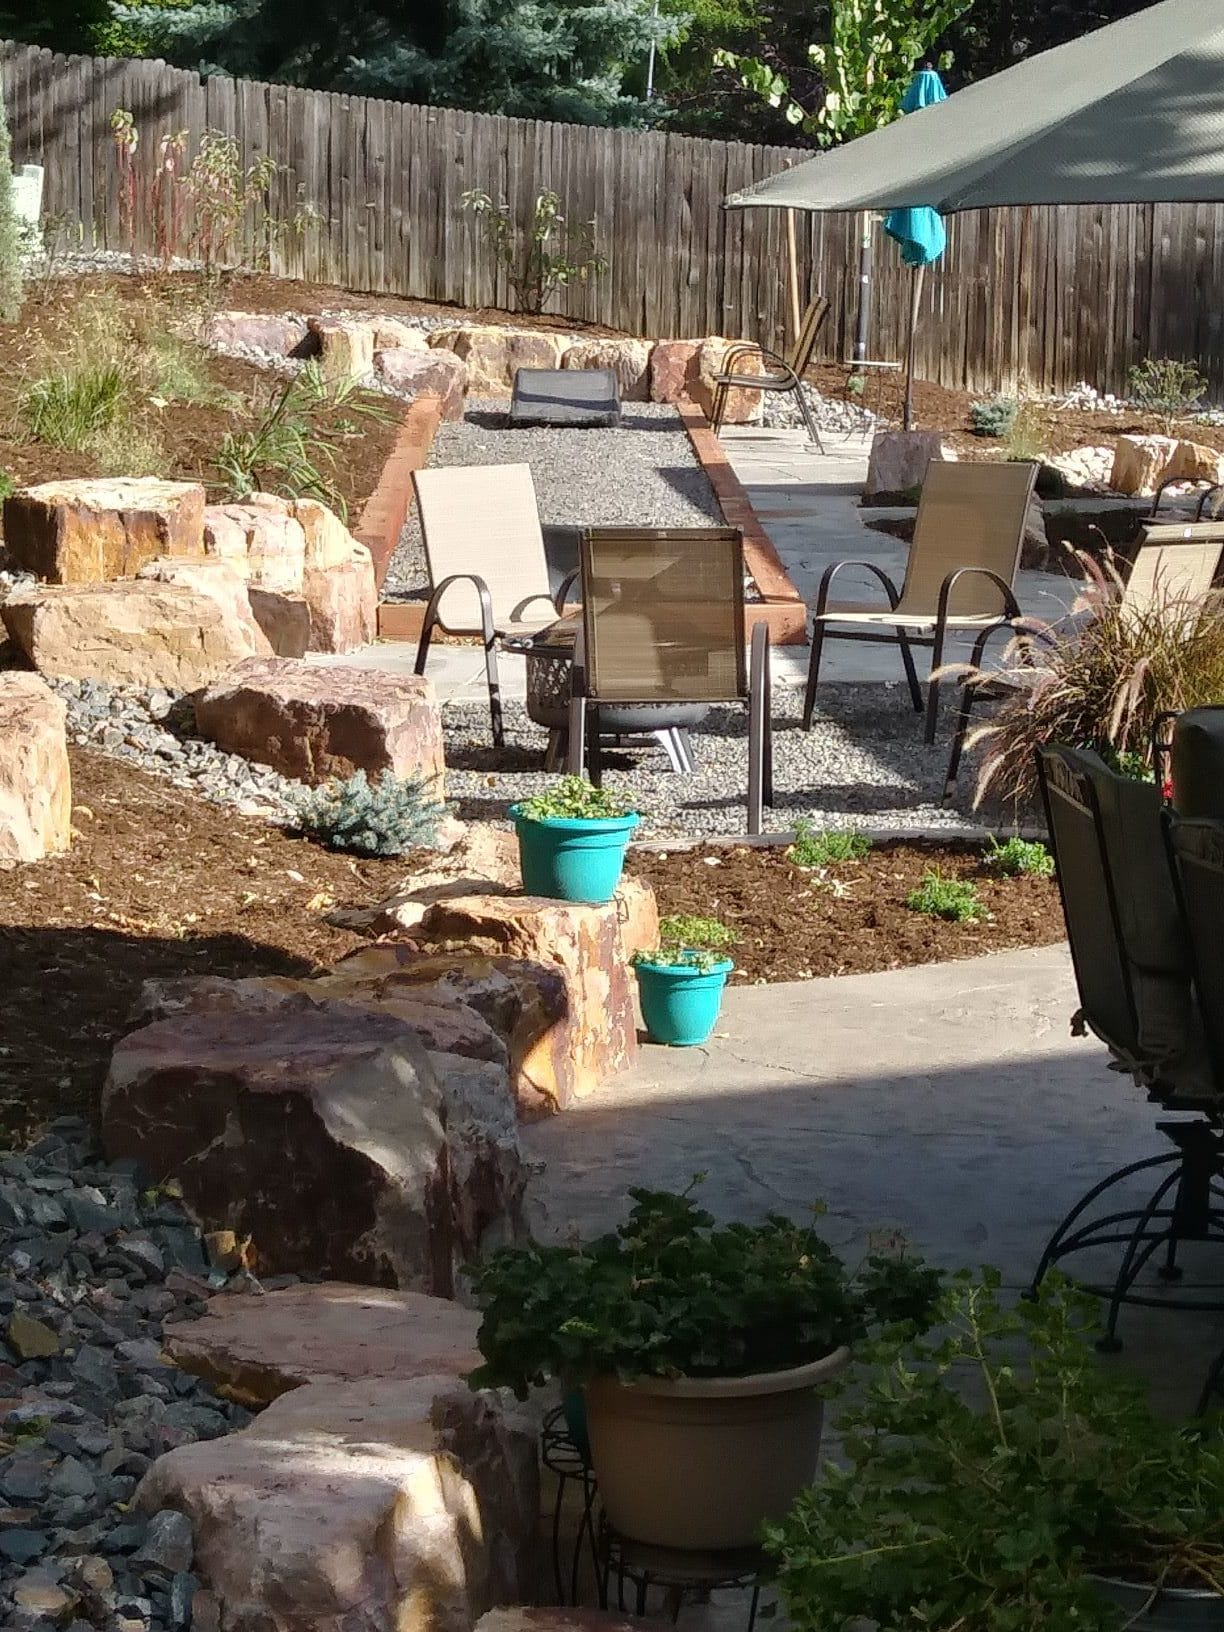 Backyard seating area with flat stone patio and gravel chair area. Surrounded by mulch with low water bushes and plants.